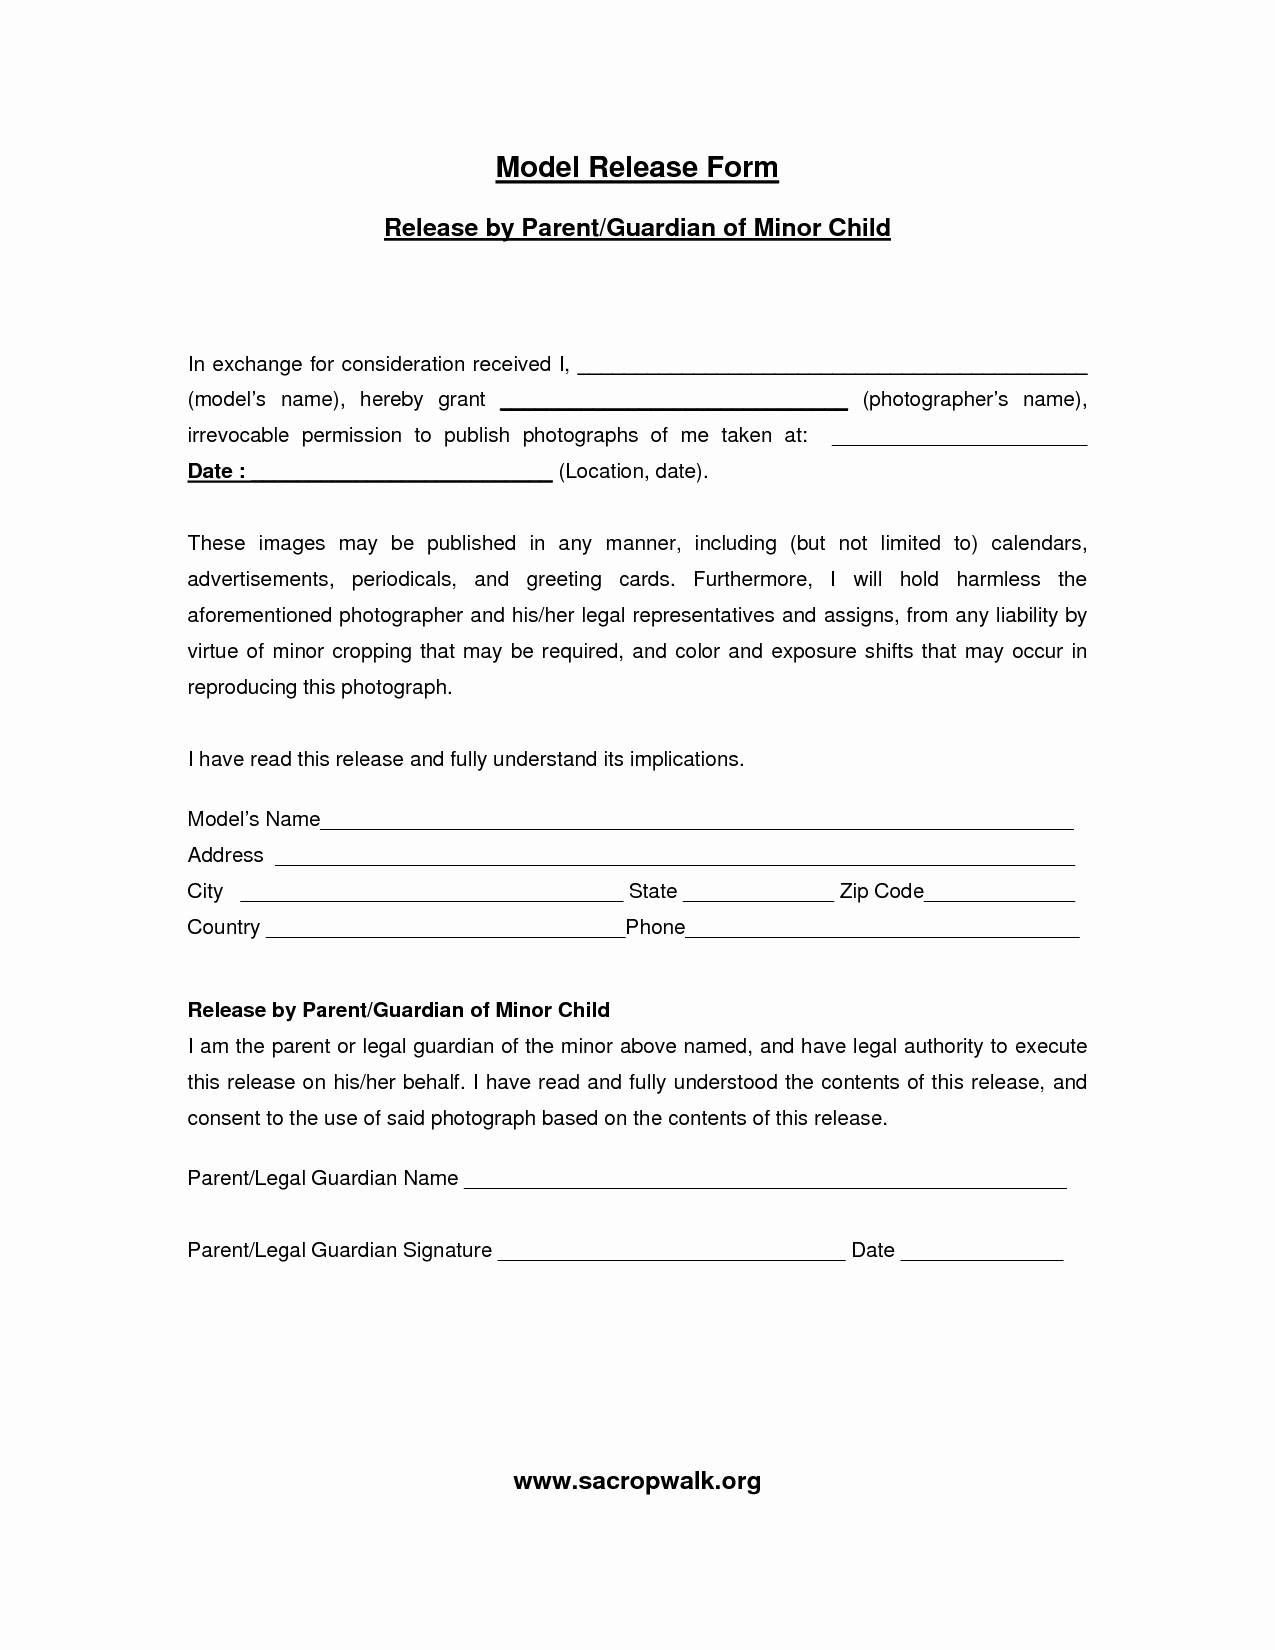 Model Release forms Awesome Model Release form Template